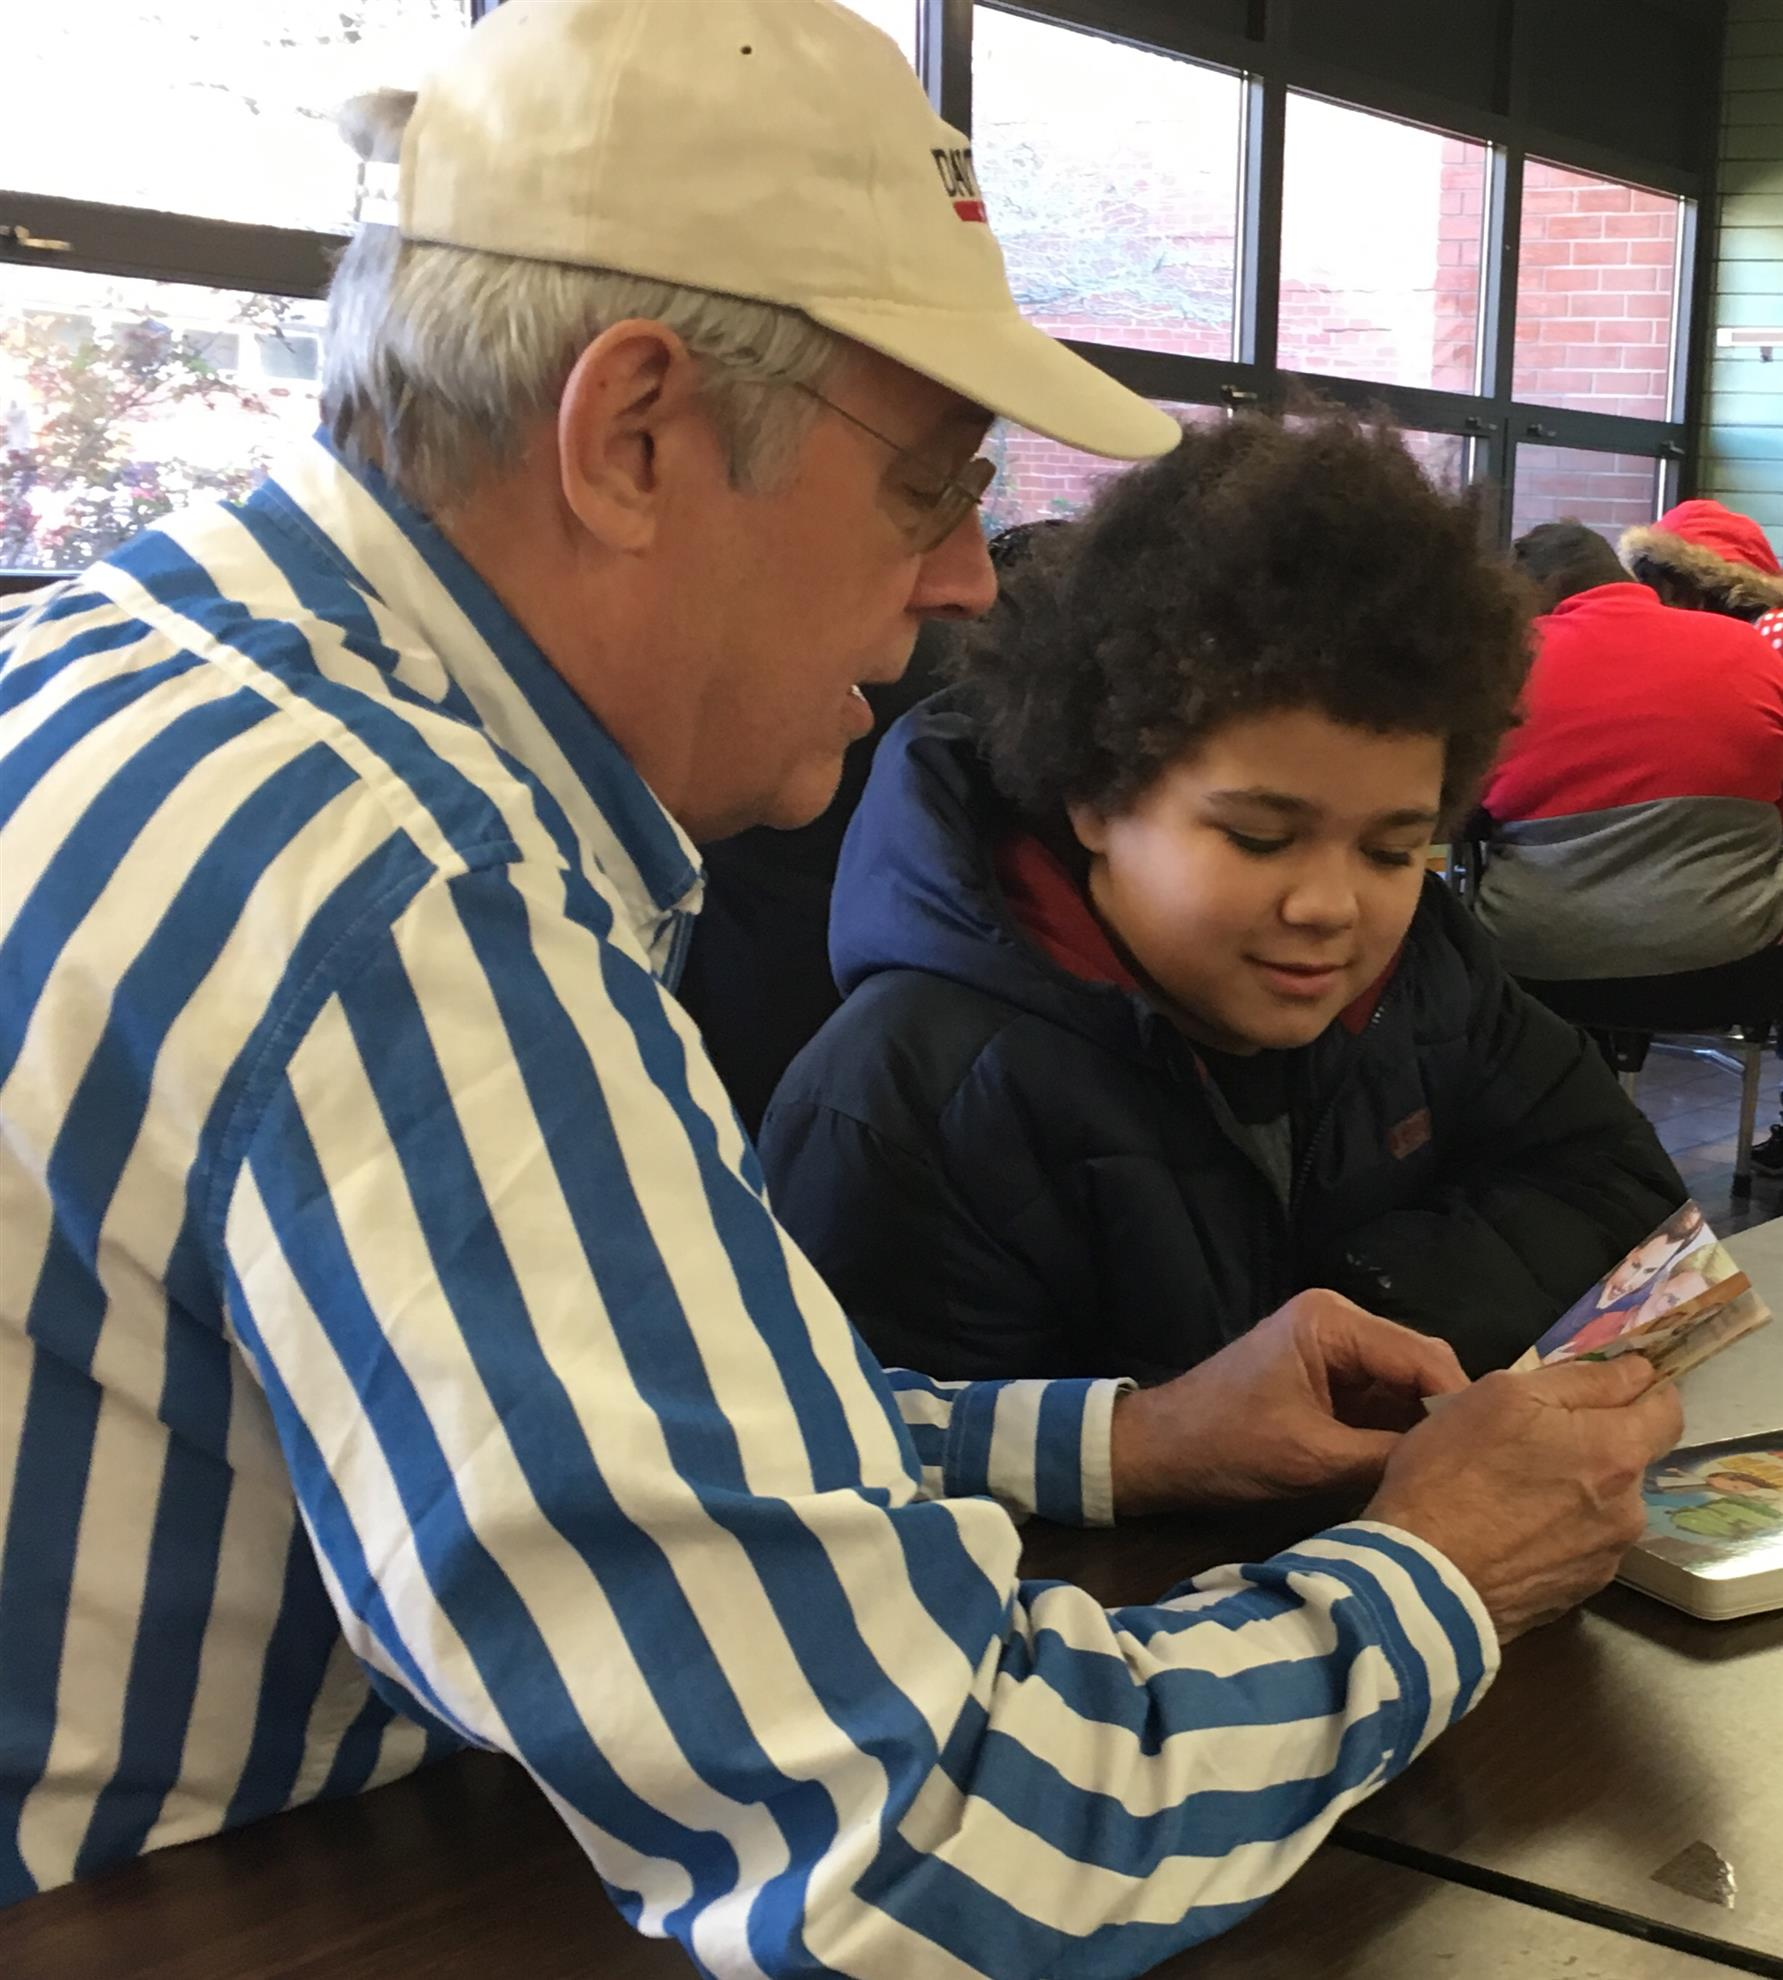 e5faf32c0bb Chip Vogan was among nearly a dozen Rotarian volunteers reading one-on-one  with students at P.B. Young Elementary School recently as part of Horizons  ...